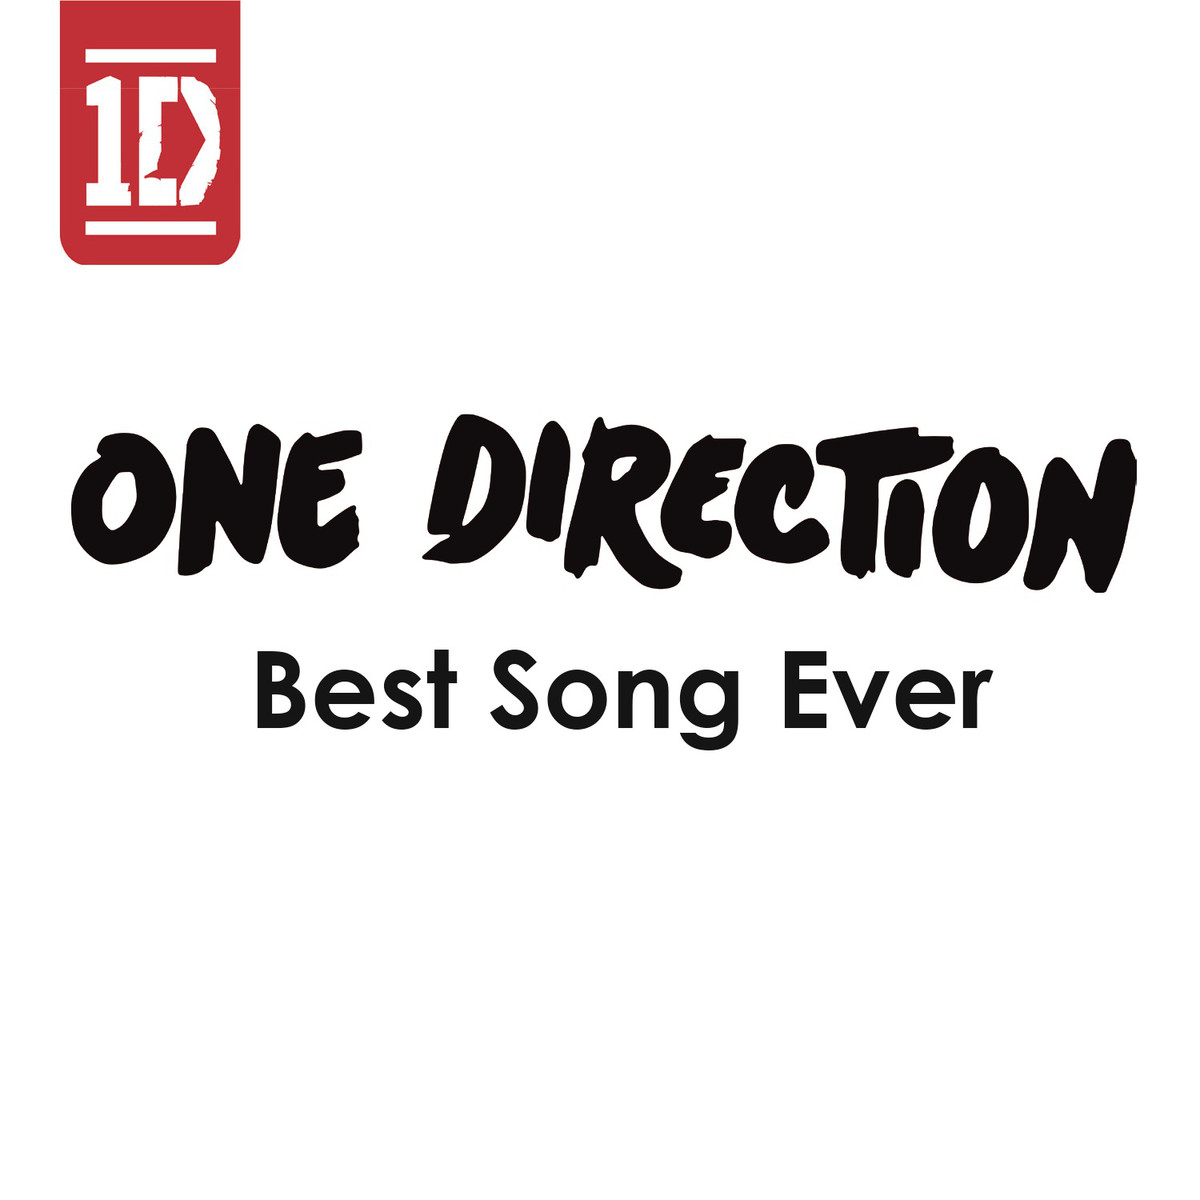 onedirection_bestsongever